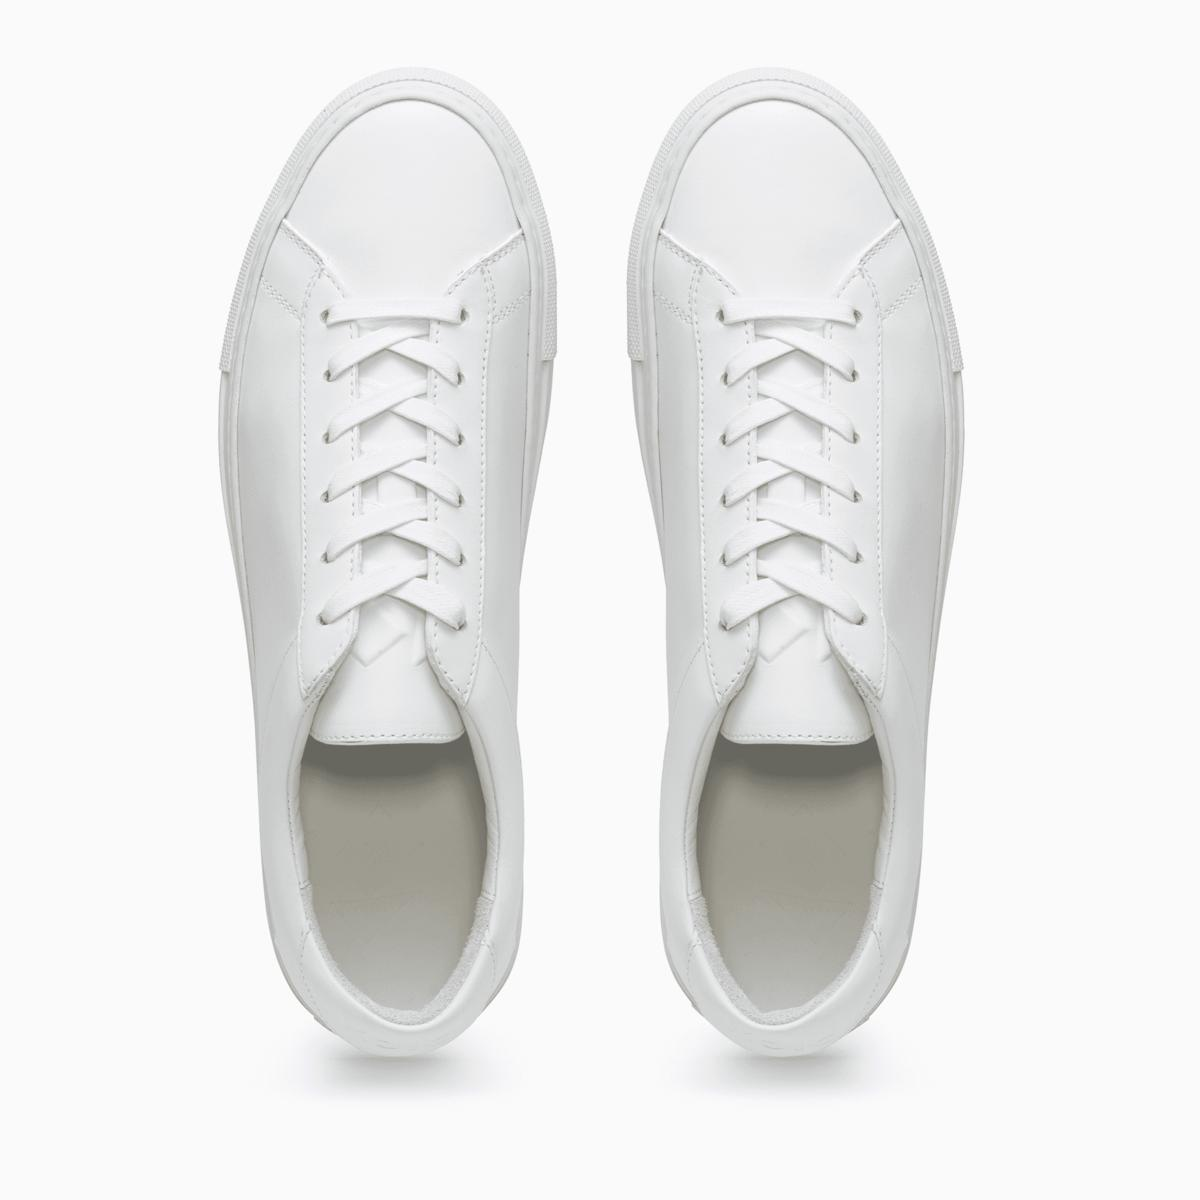 Men's Low Top Leather Sneaker in White.